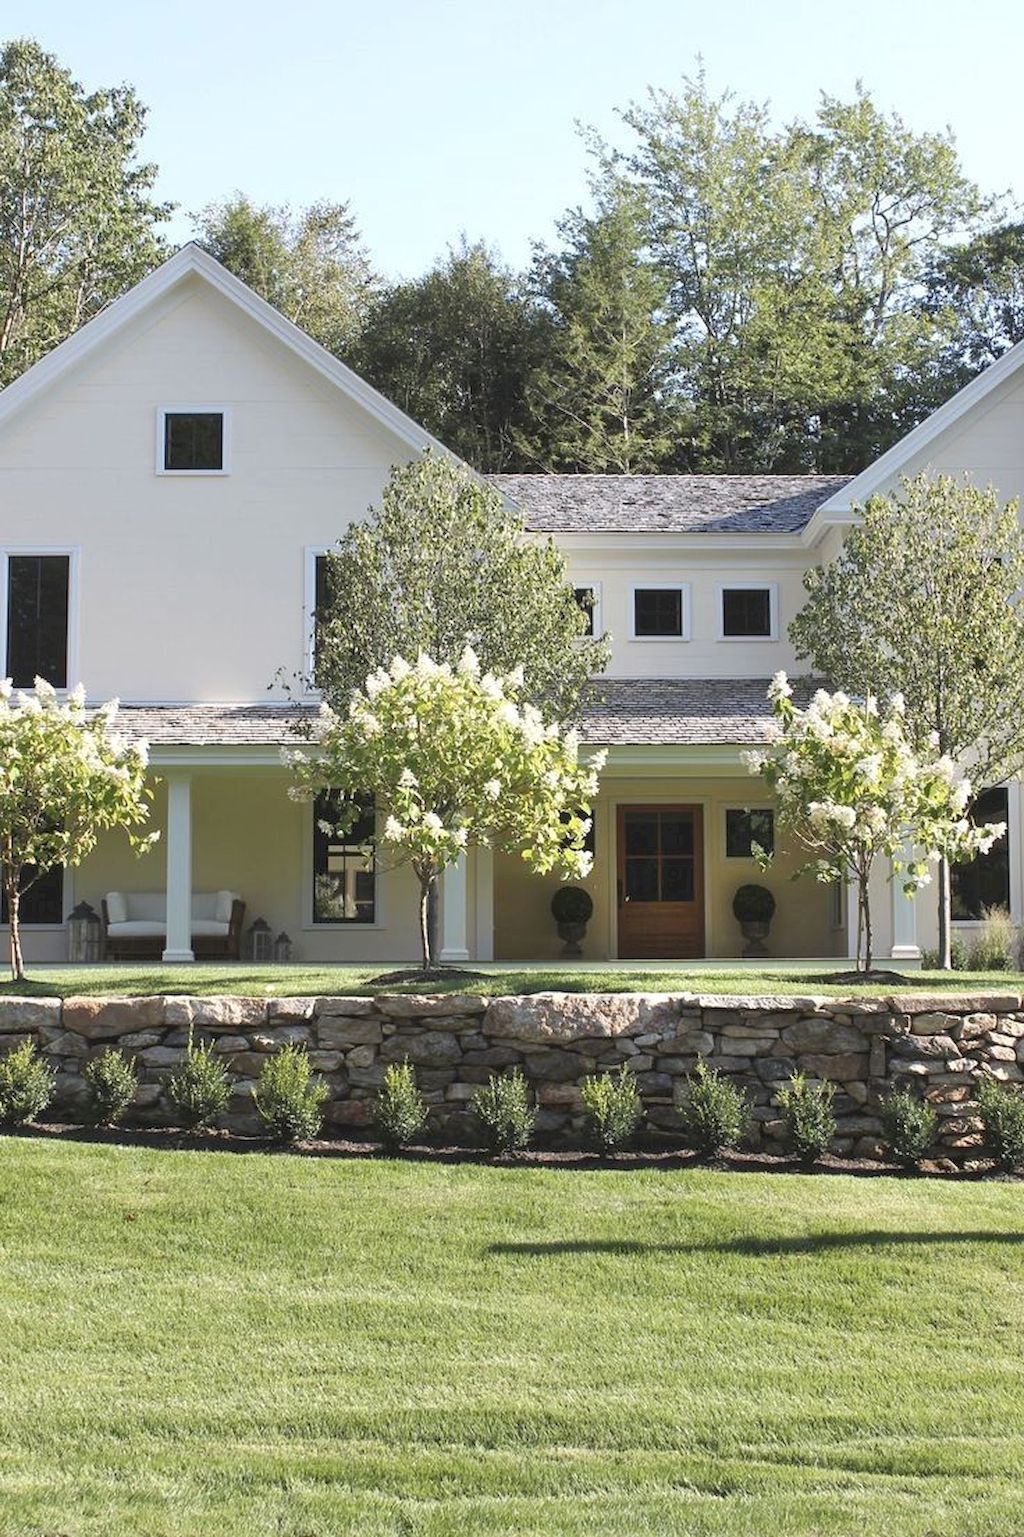 Fresh farmhouse white modern style ideas also best front yard landscaping and garden designs linscapes rh pinterest